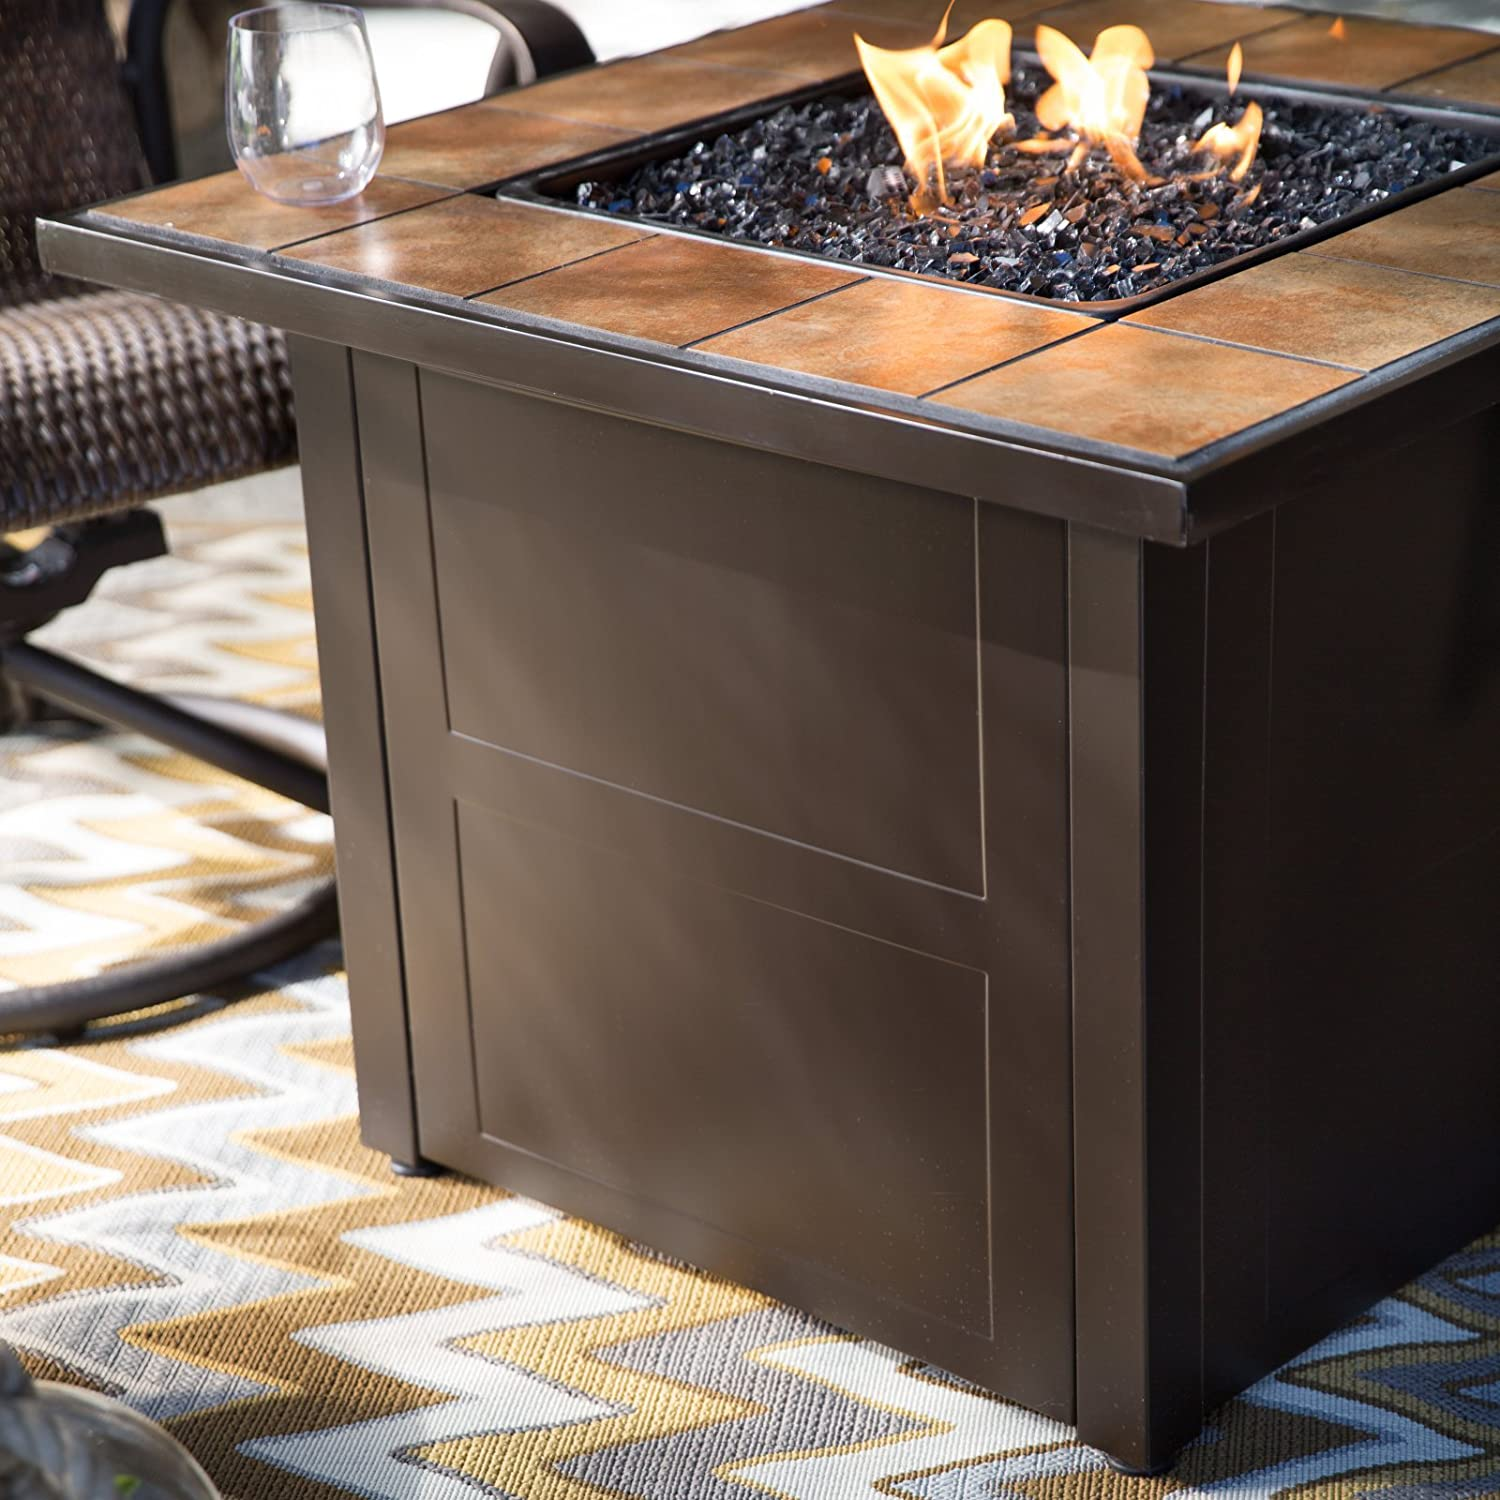 81jC950wtyL. SL1500  Top Result 50 Awesome High top Fire Pit Table Pic 2018 Jdt4